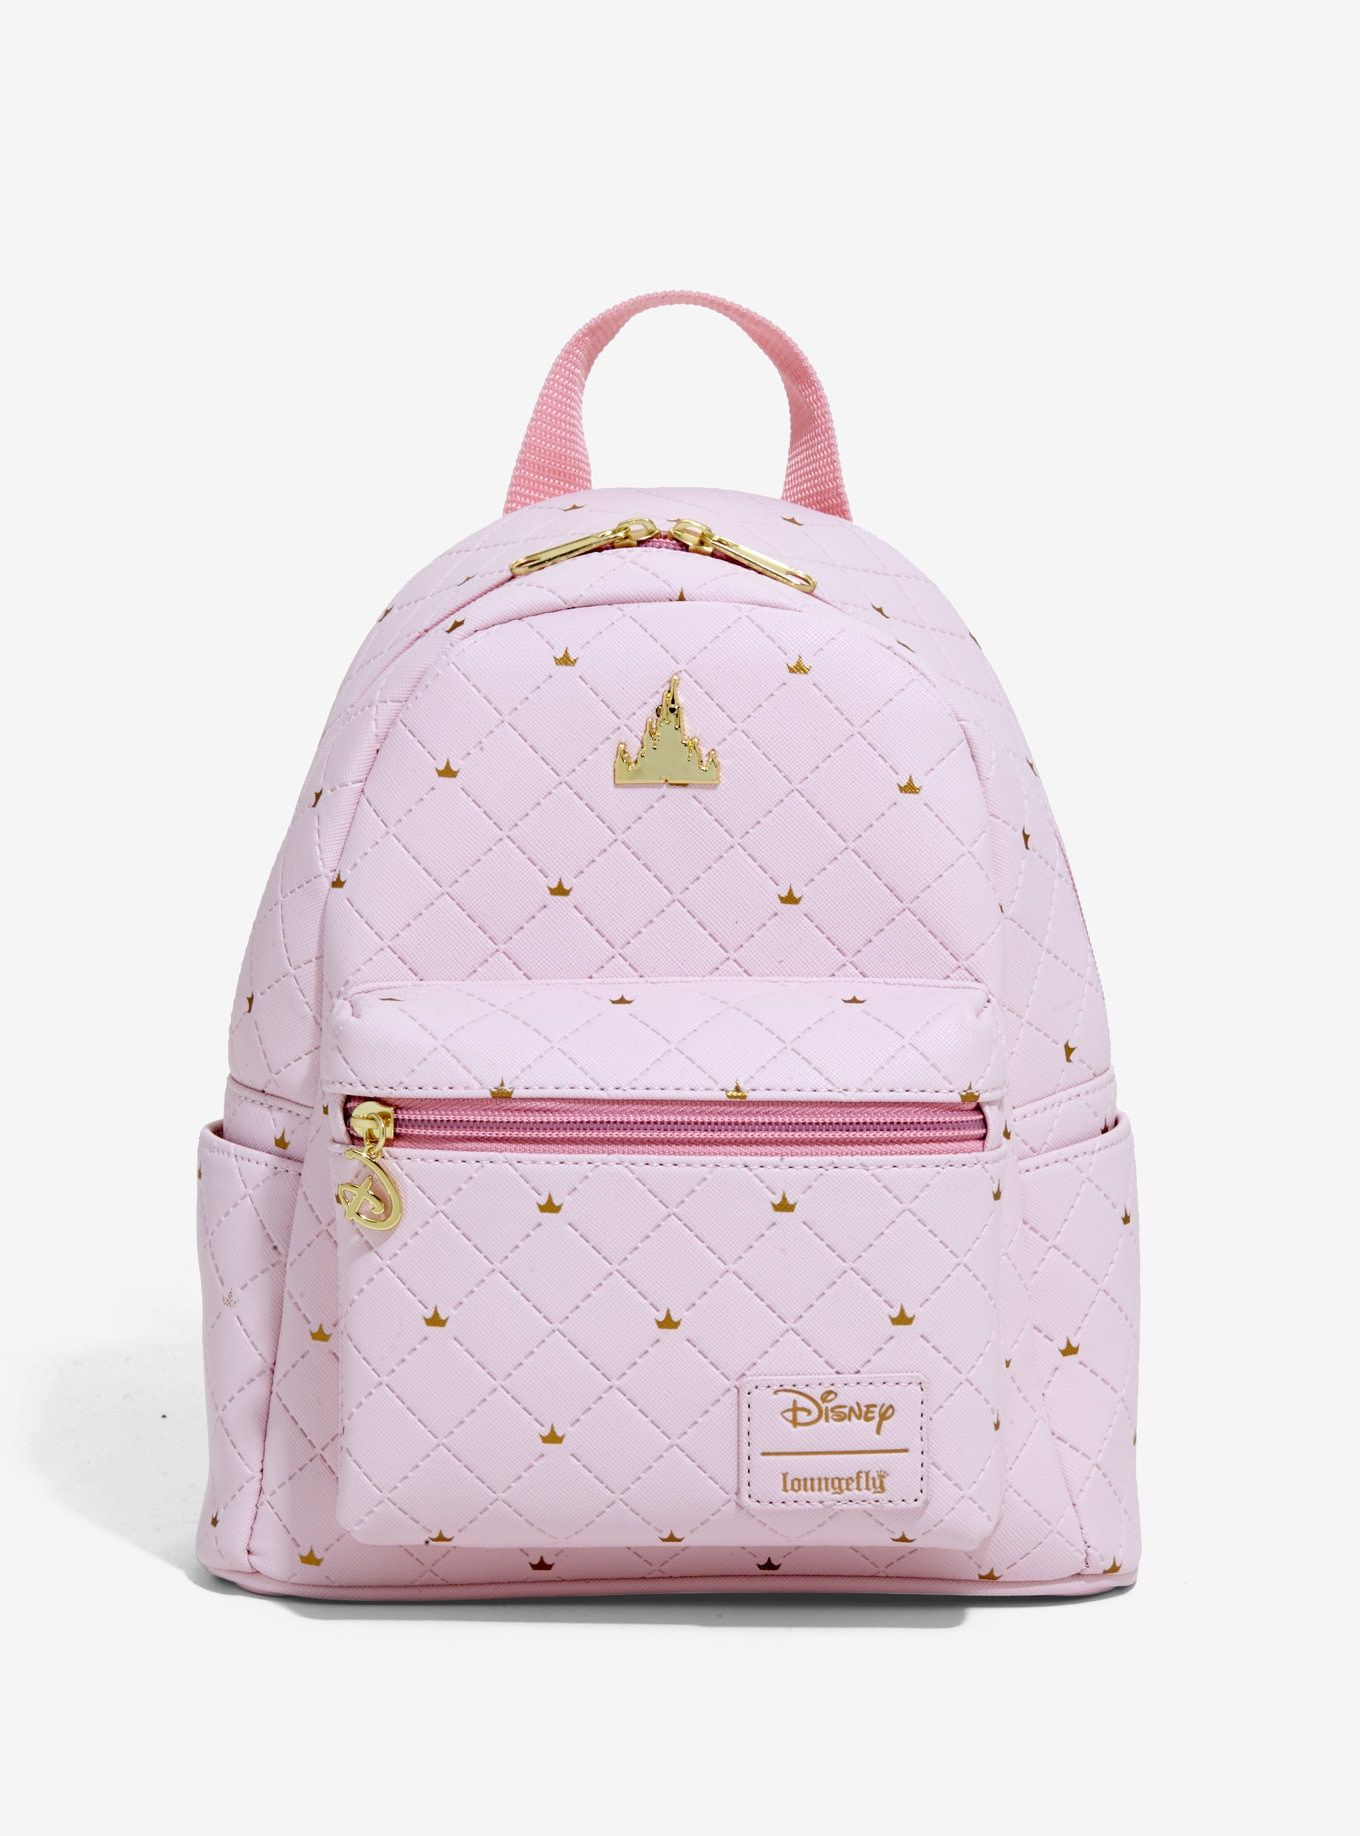 b21b9771070e Loungefly Disney Days Castle Mini Backpack | Disney Fashion in 2019 ...